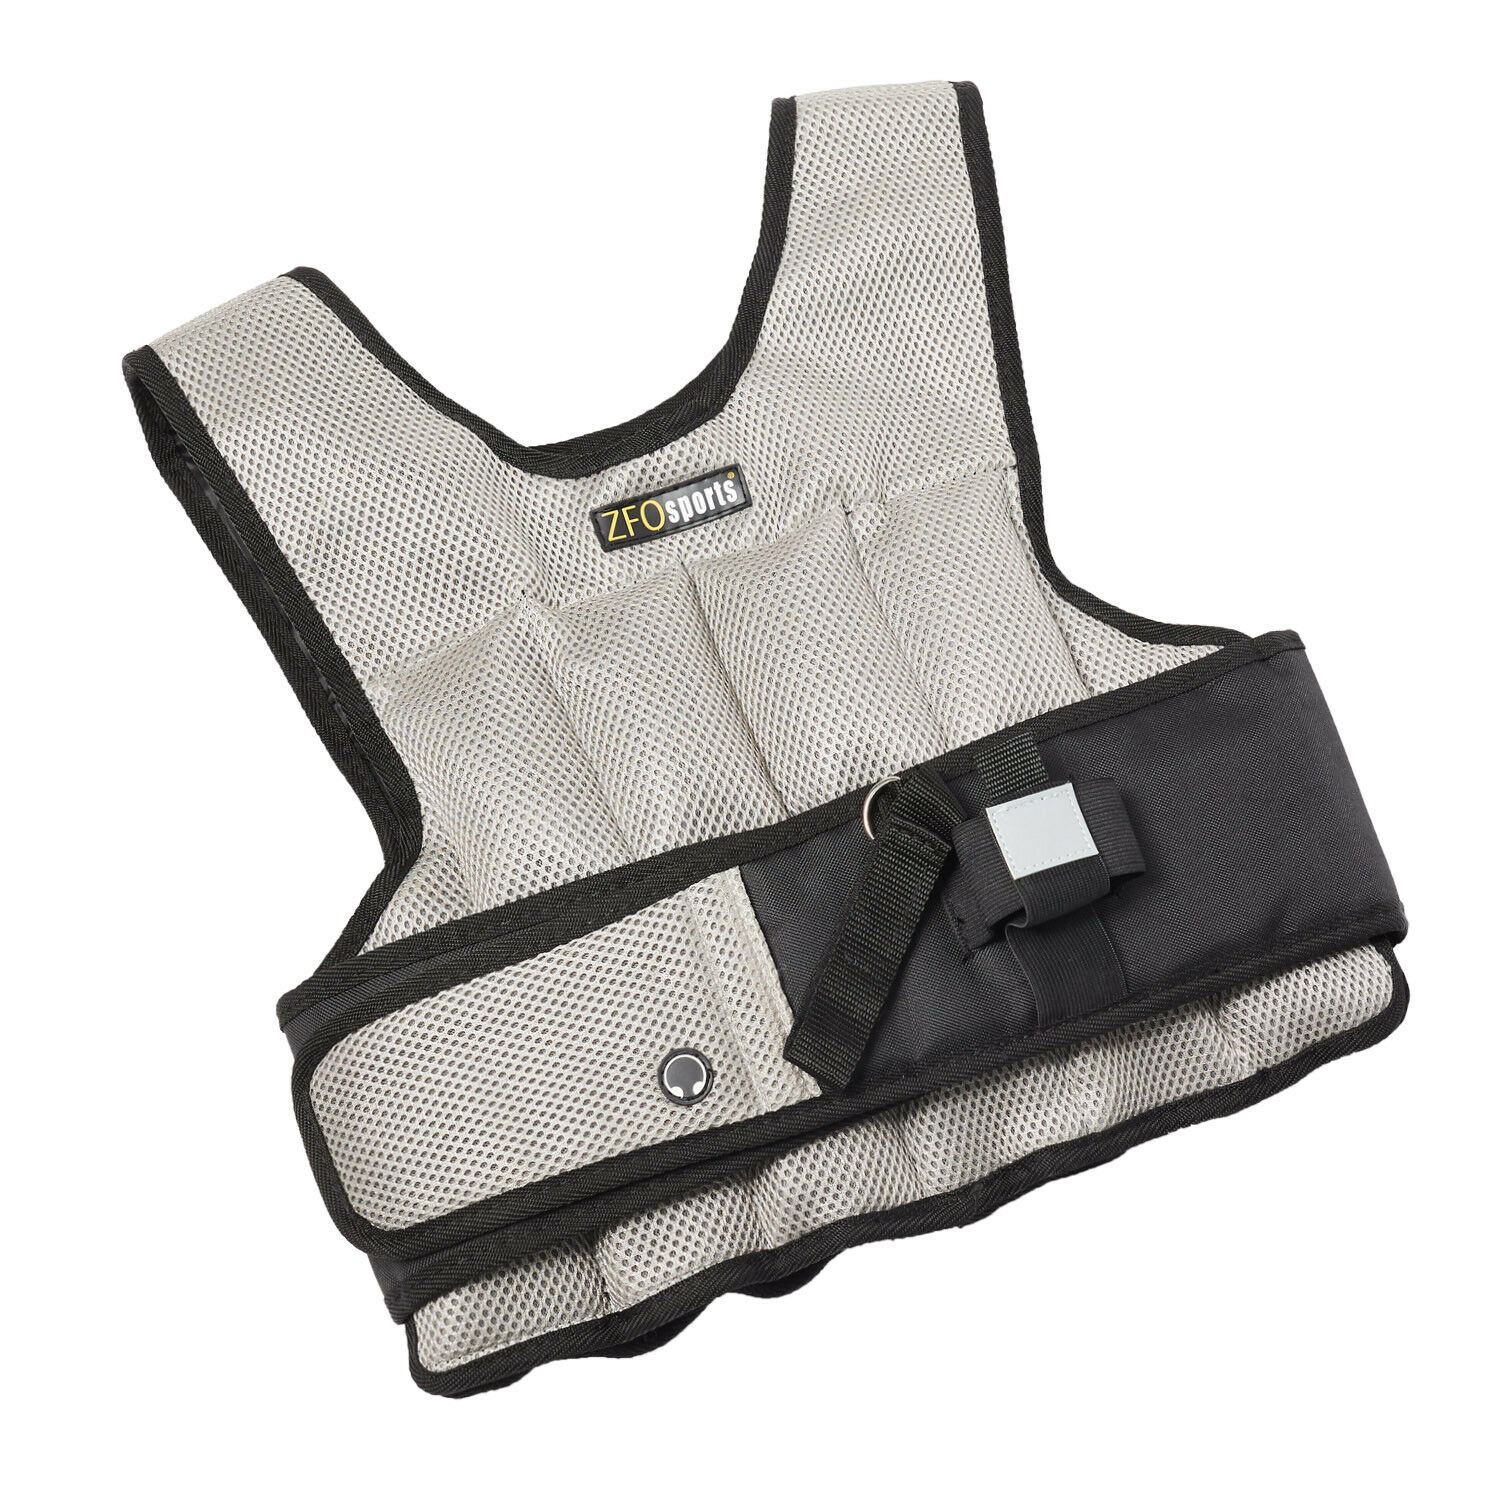 ZFOsports 20LBS SHORT ADJUSTABLE  WEIGHTED VEST.  save up to 70% discount